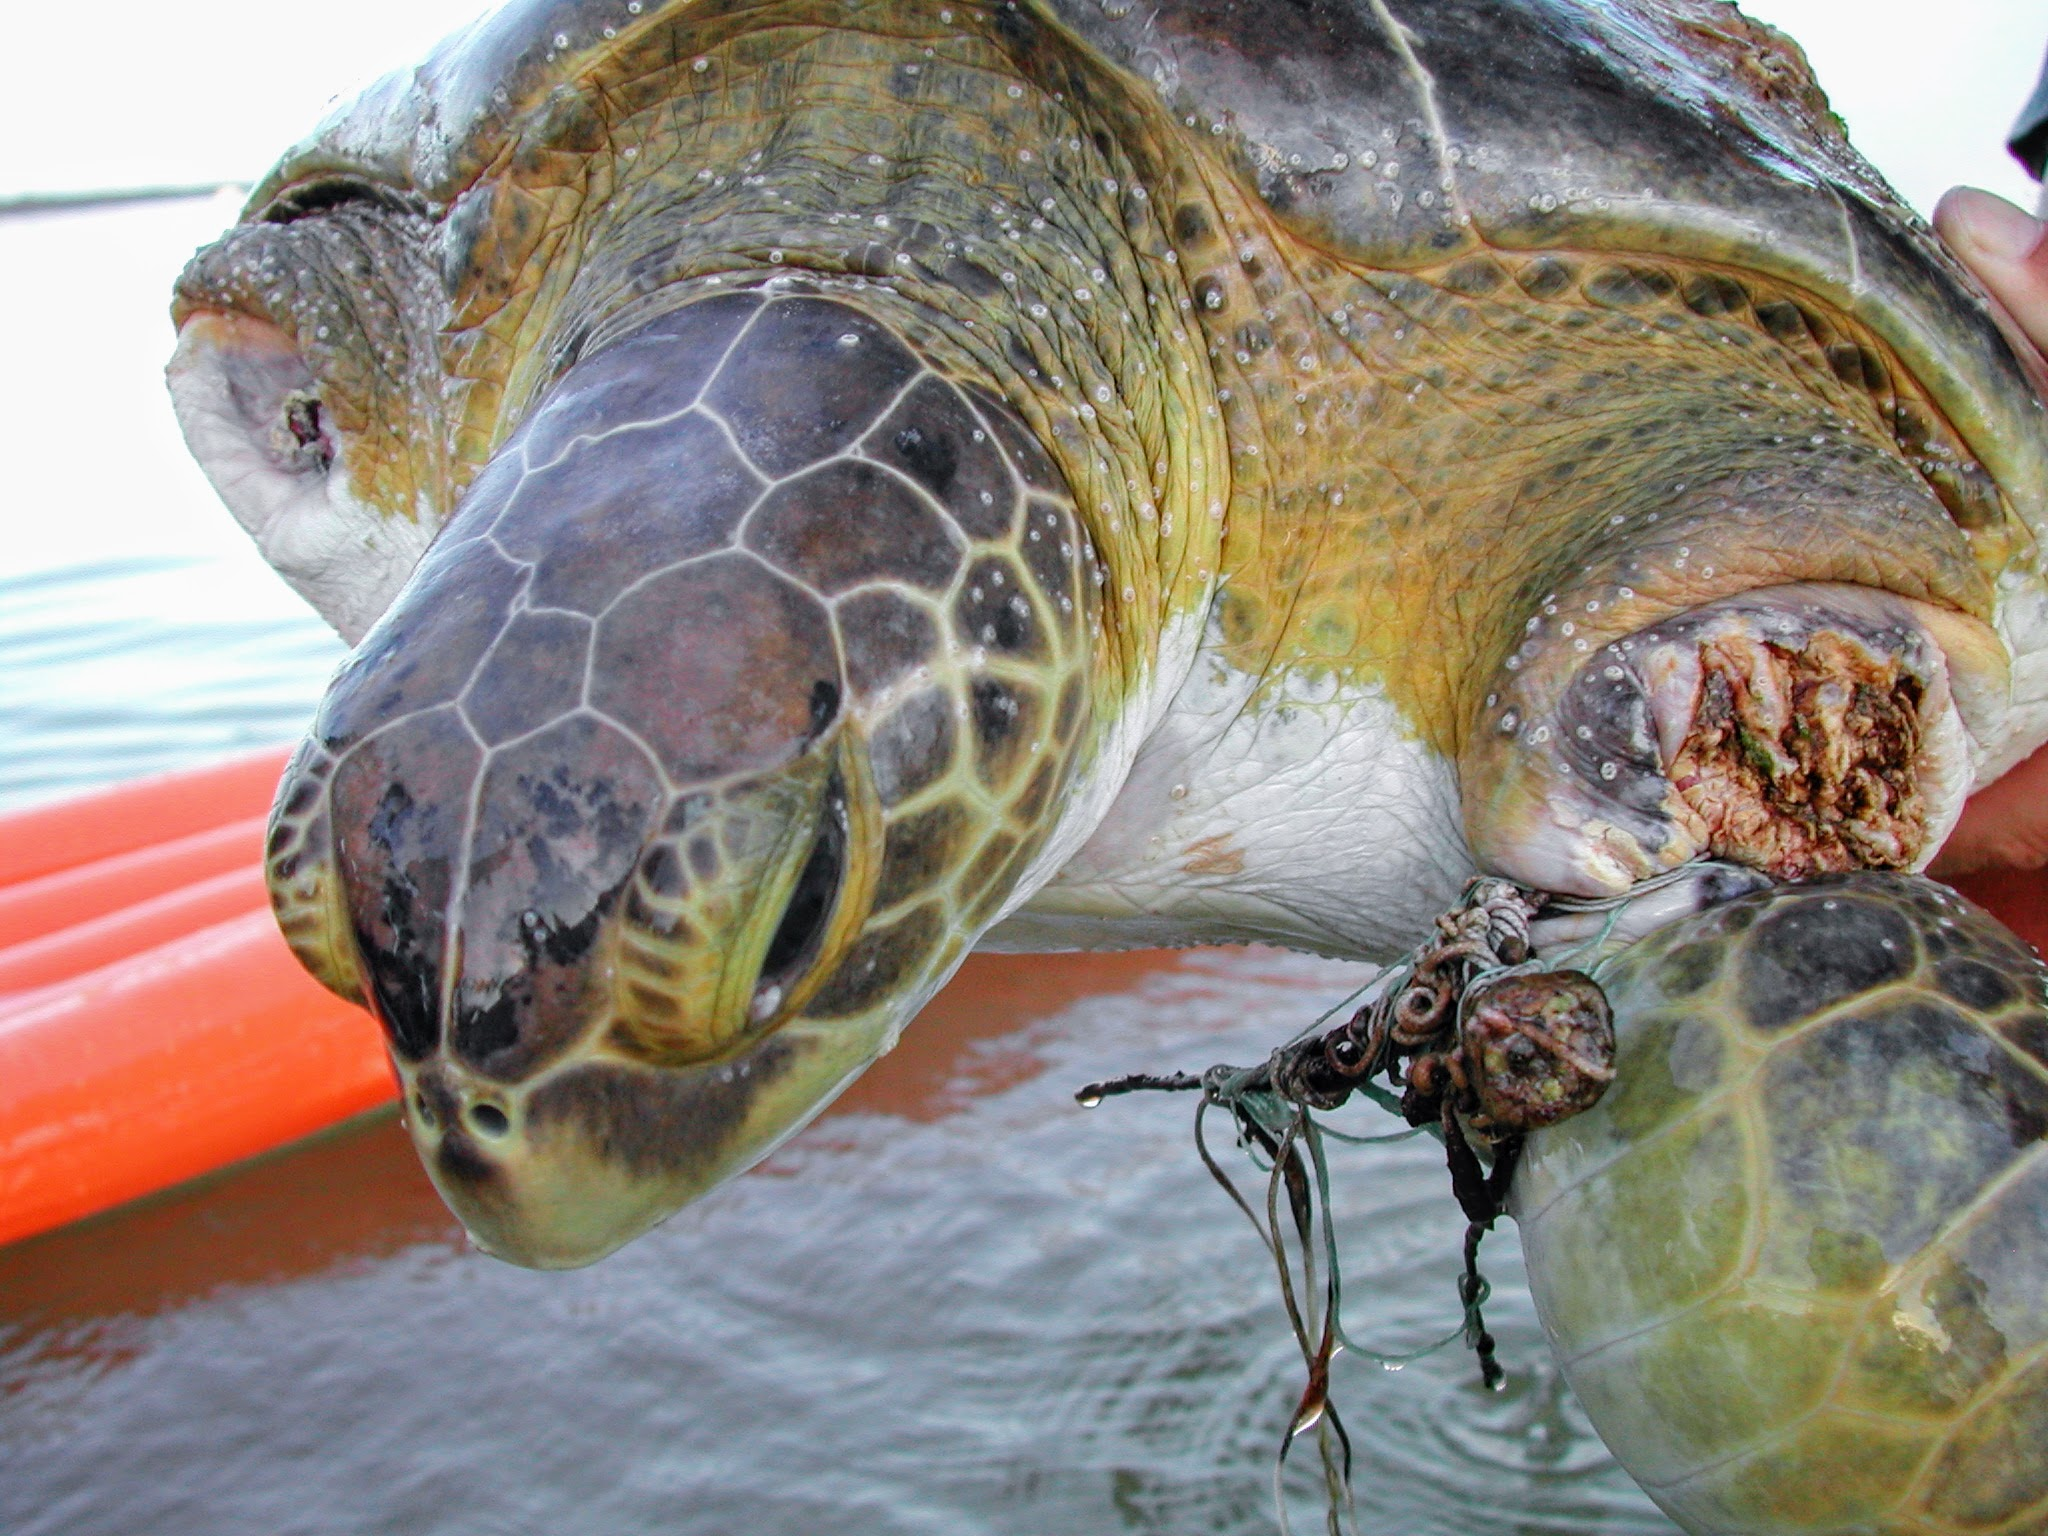 Green sea turtle with front left flipper almost falling off because of fishing line injury.